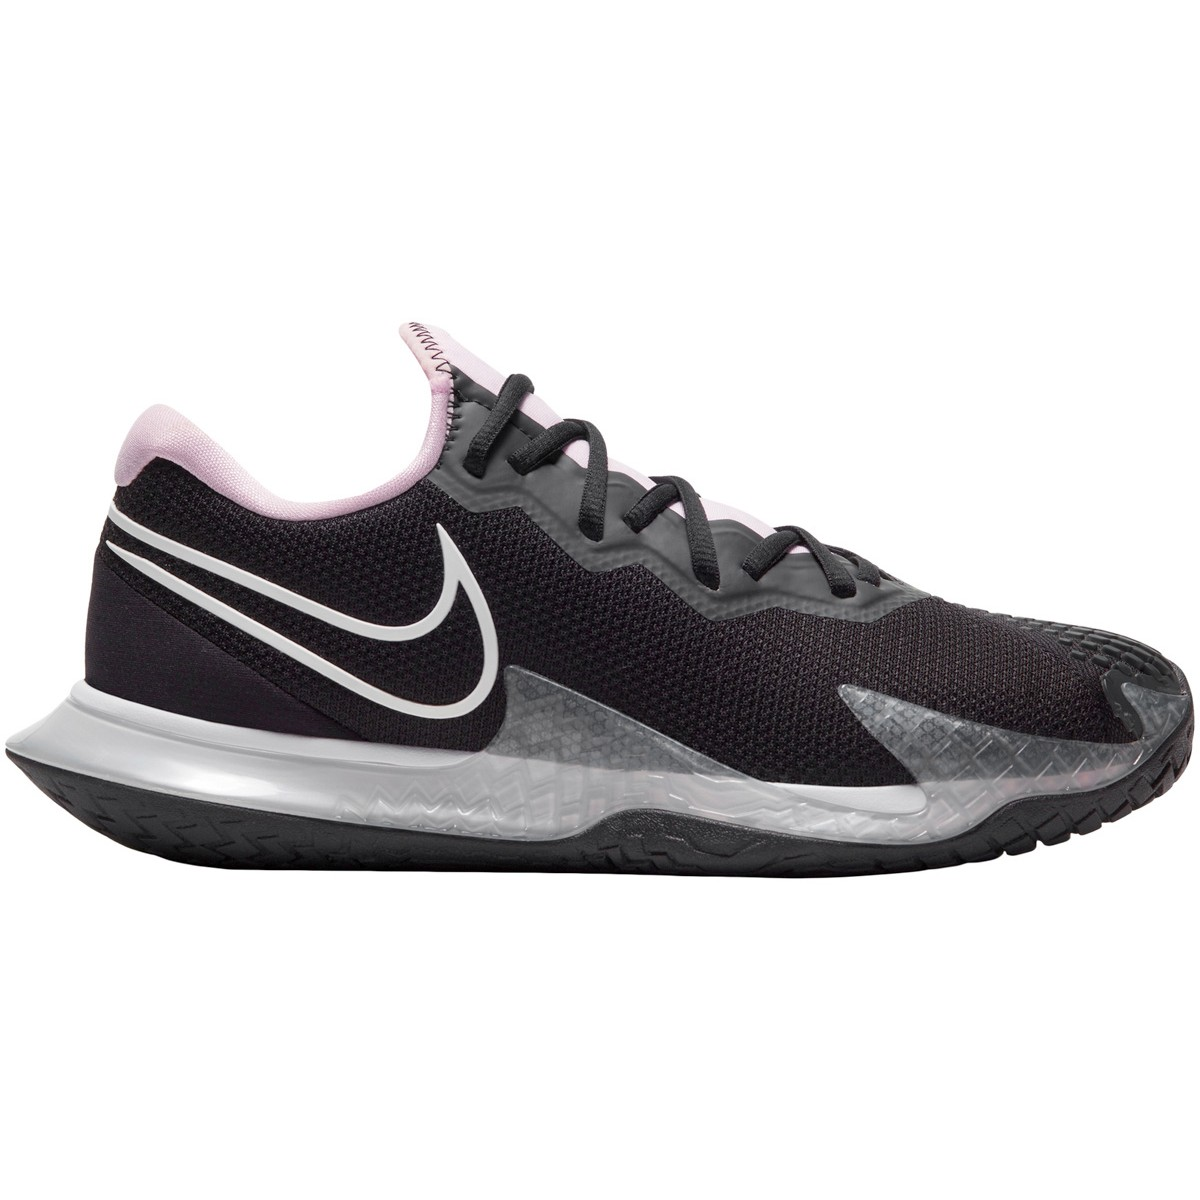 Pink Nike 27 Women's Outlet Online, UP TO 53% OFF